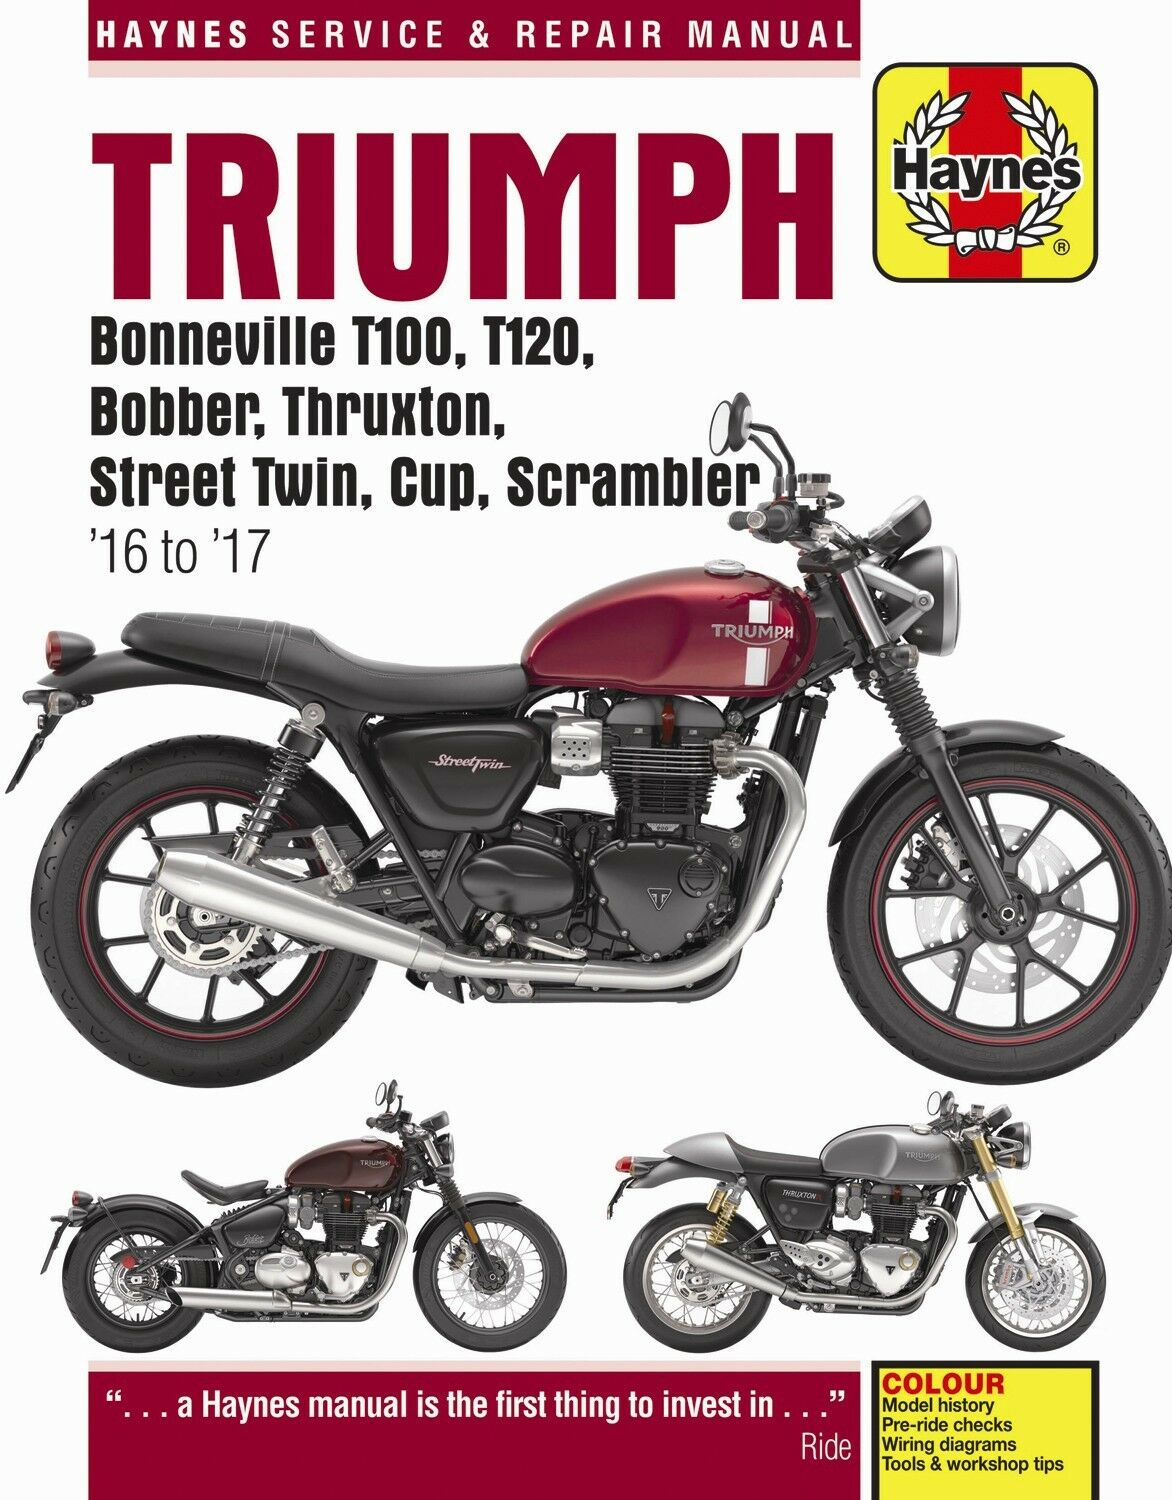 2016 2017 Triumph Bonneville T100 T120 Bobber Thruxton Street Twin Softail Wiring Diagram Repair Manual 1 Of 3only 2 Available See More